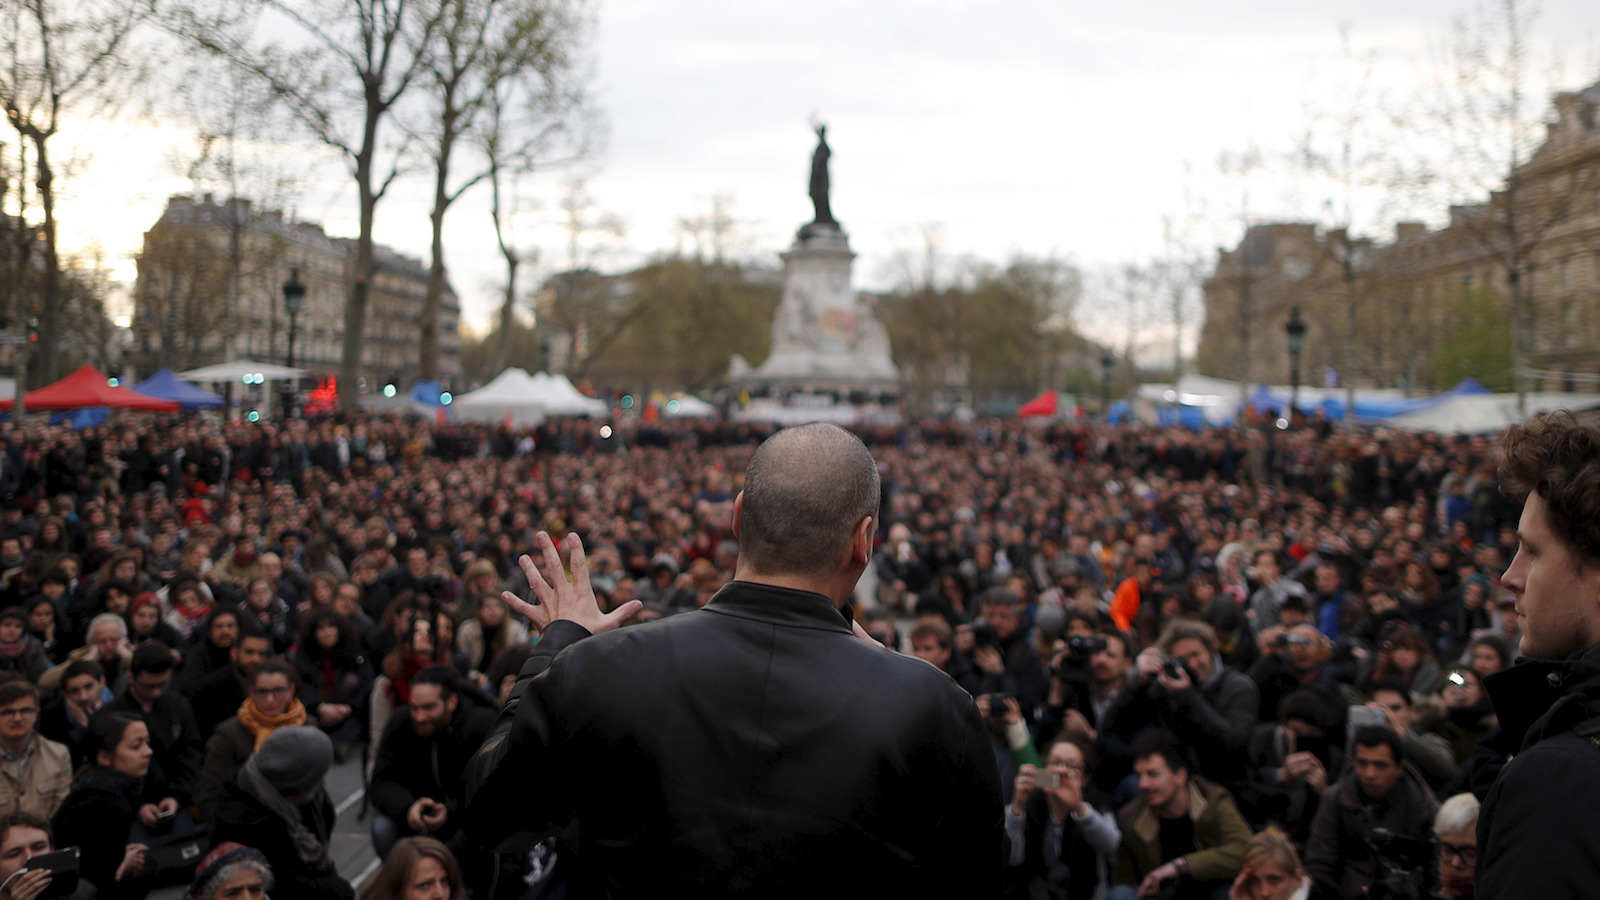 """Former Greek Finance Minister Yanis Varoufakis speaks in front of supporters of social media-driven movement """"Nuit Debout"""" (Up All Night), during their daily gathering on the Place de la Republique in Paris, France, against a French labour law proposal, April 16, 2016. REUTERS/Christian Hartmann  - RTX2A9L1"""